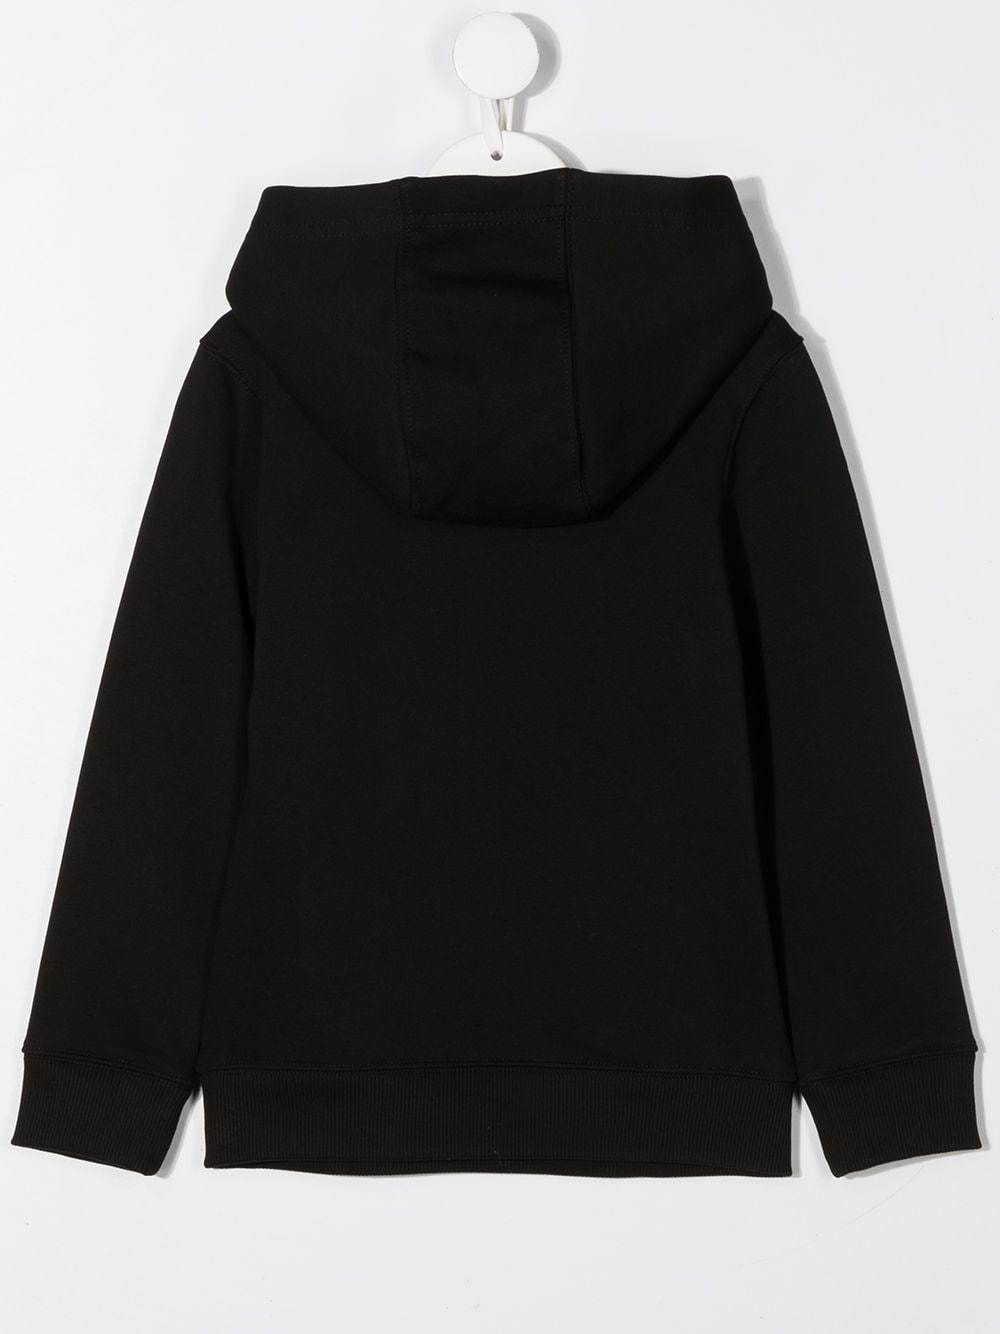 GIVENCHY KIDS Sci-Fi Logo Sweatshirt Black